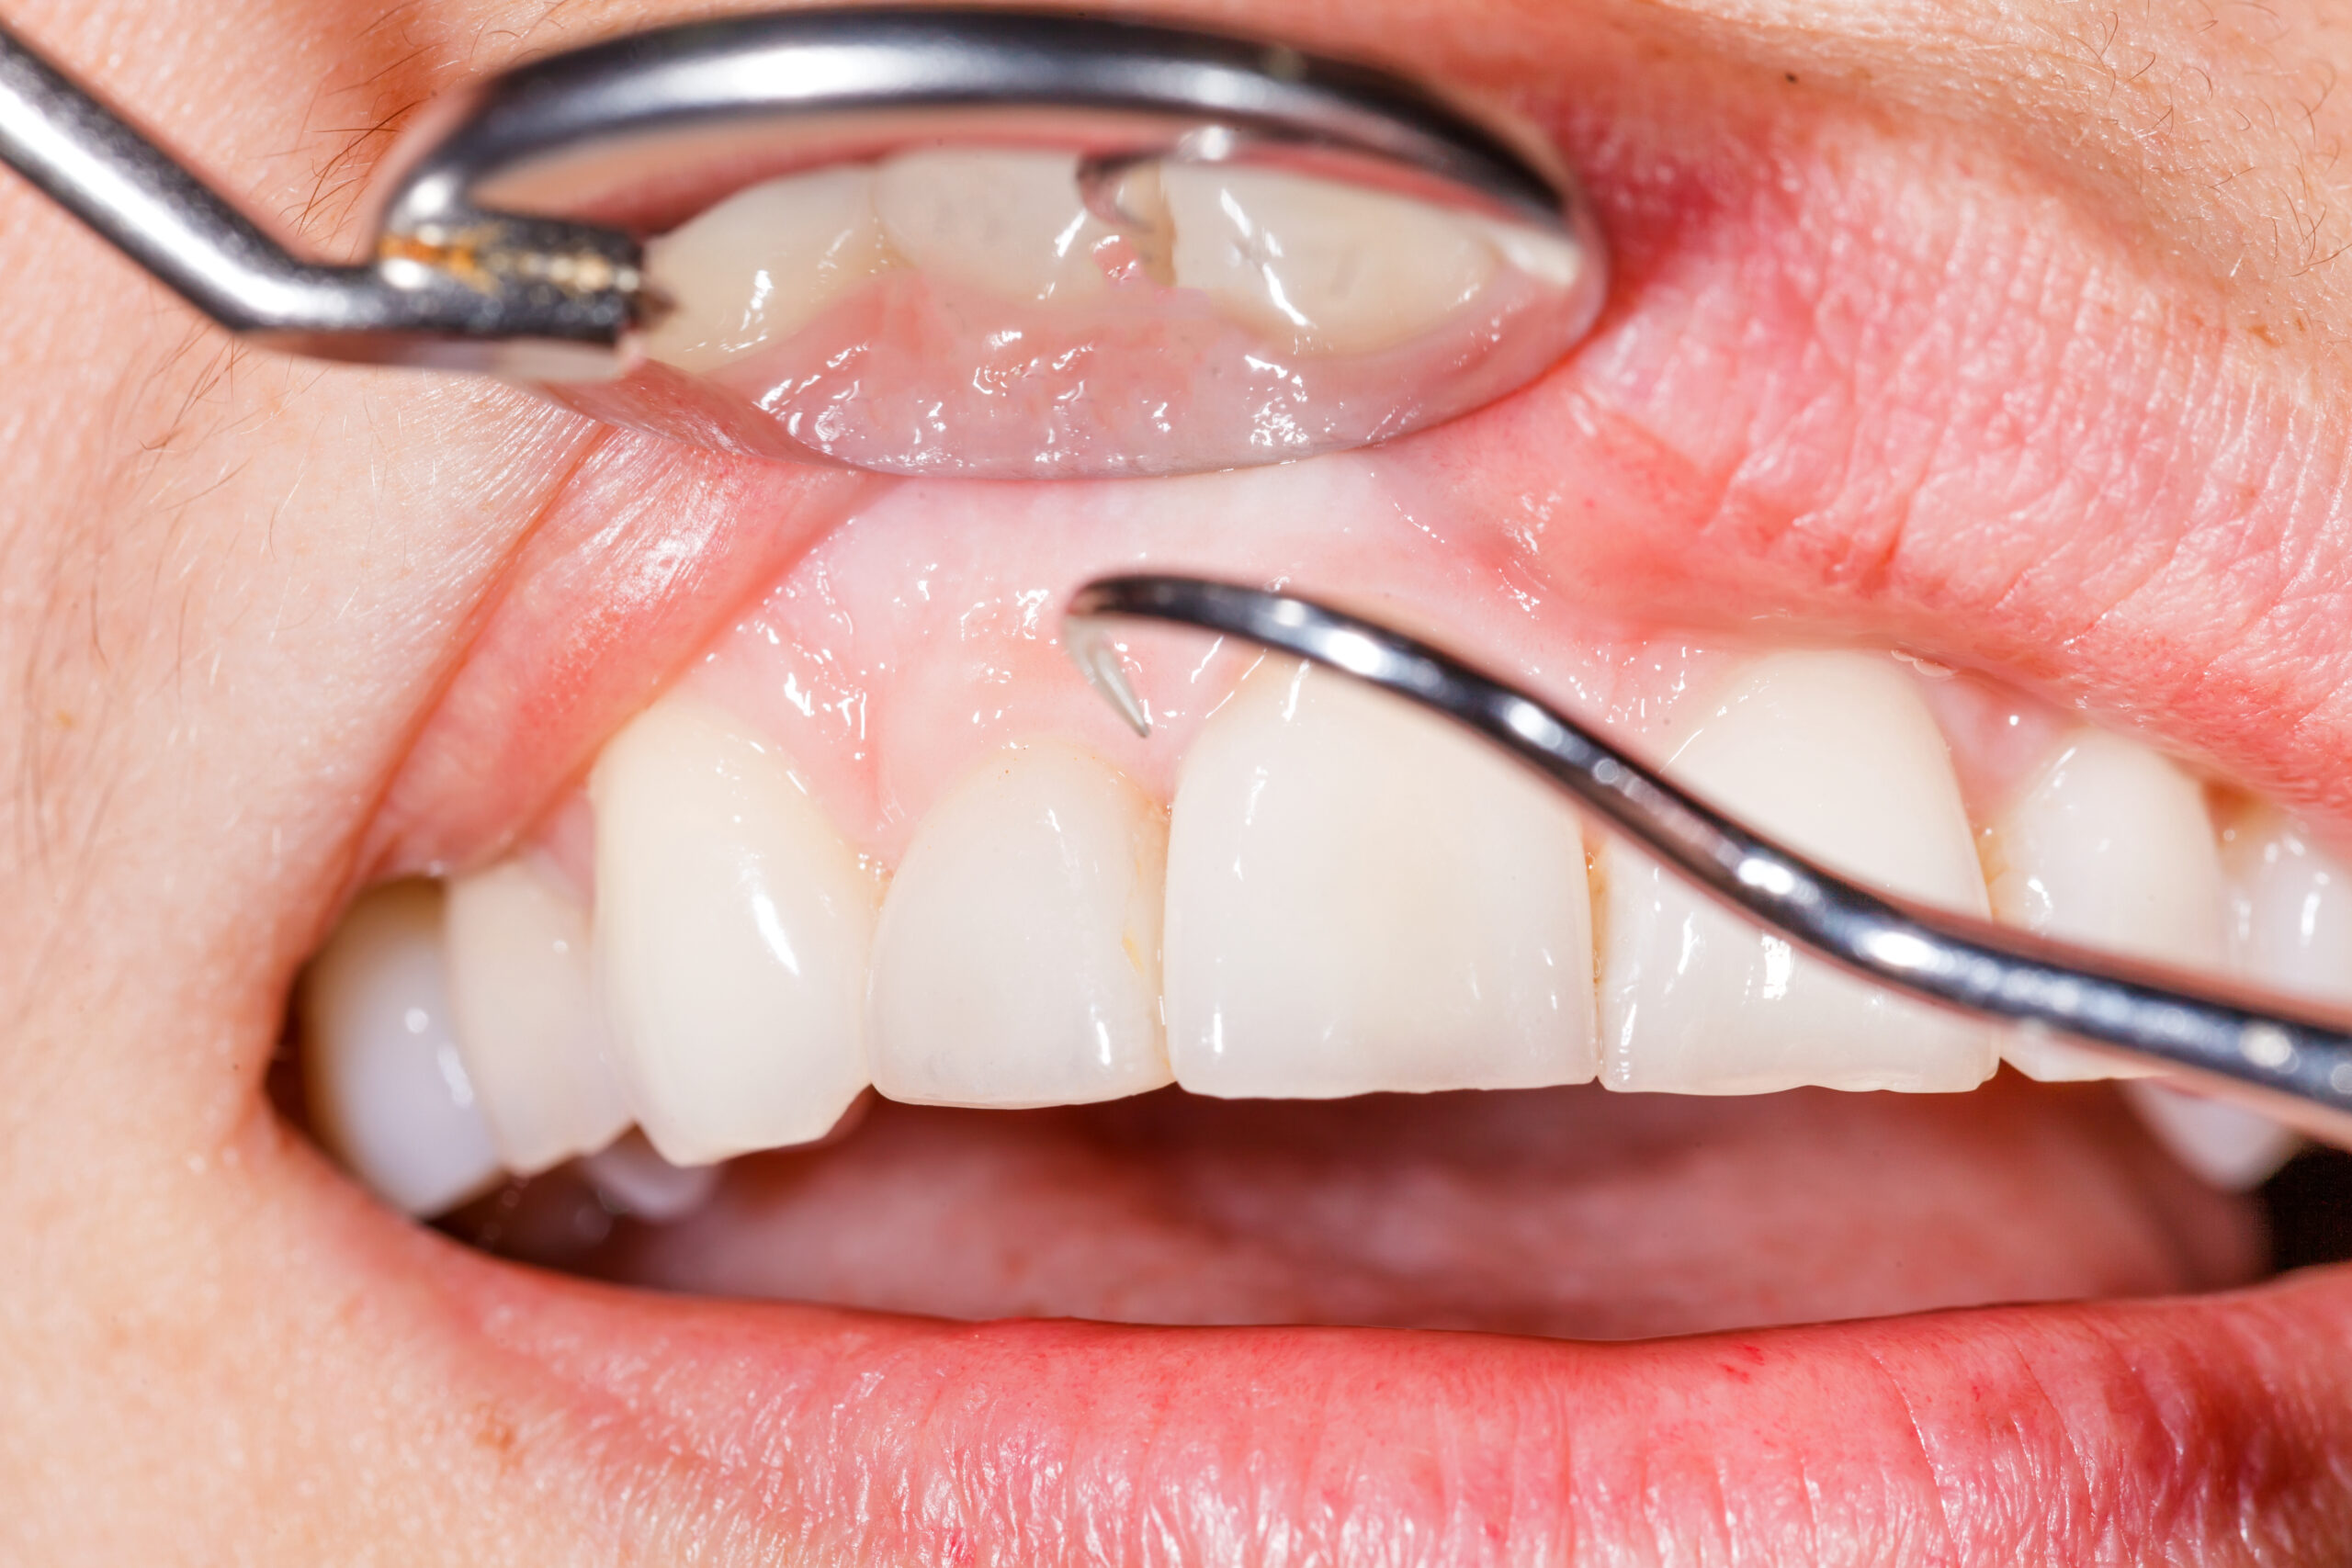 Dentist examining Periodontal disease